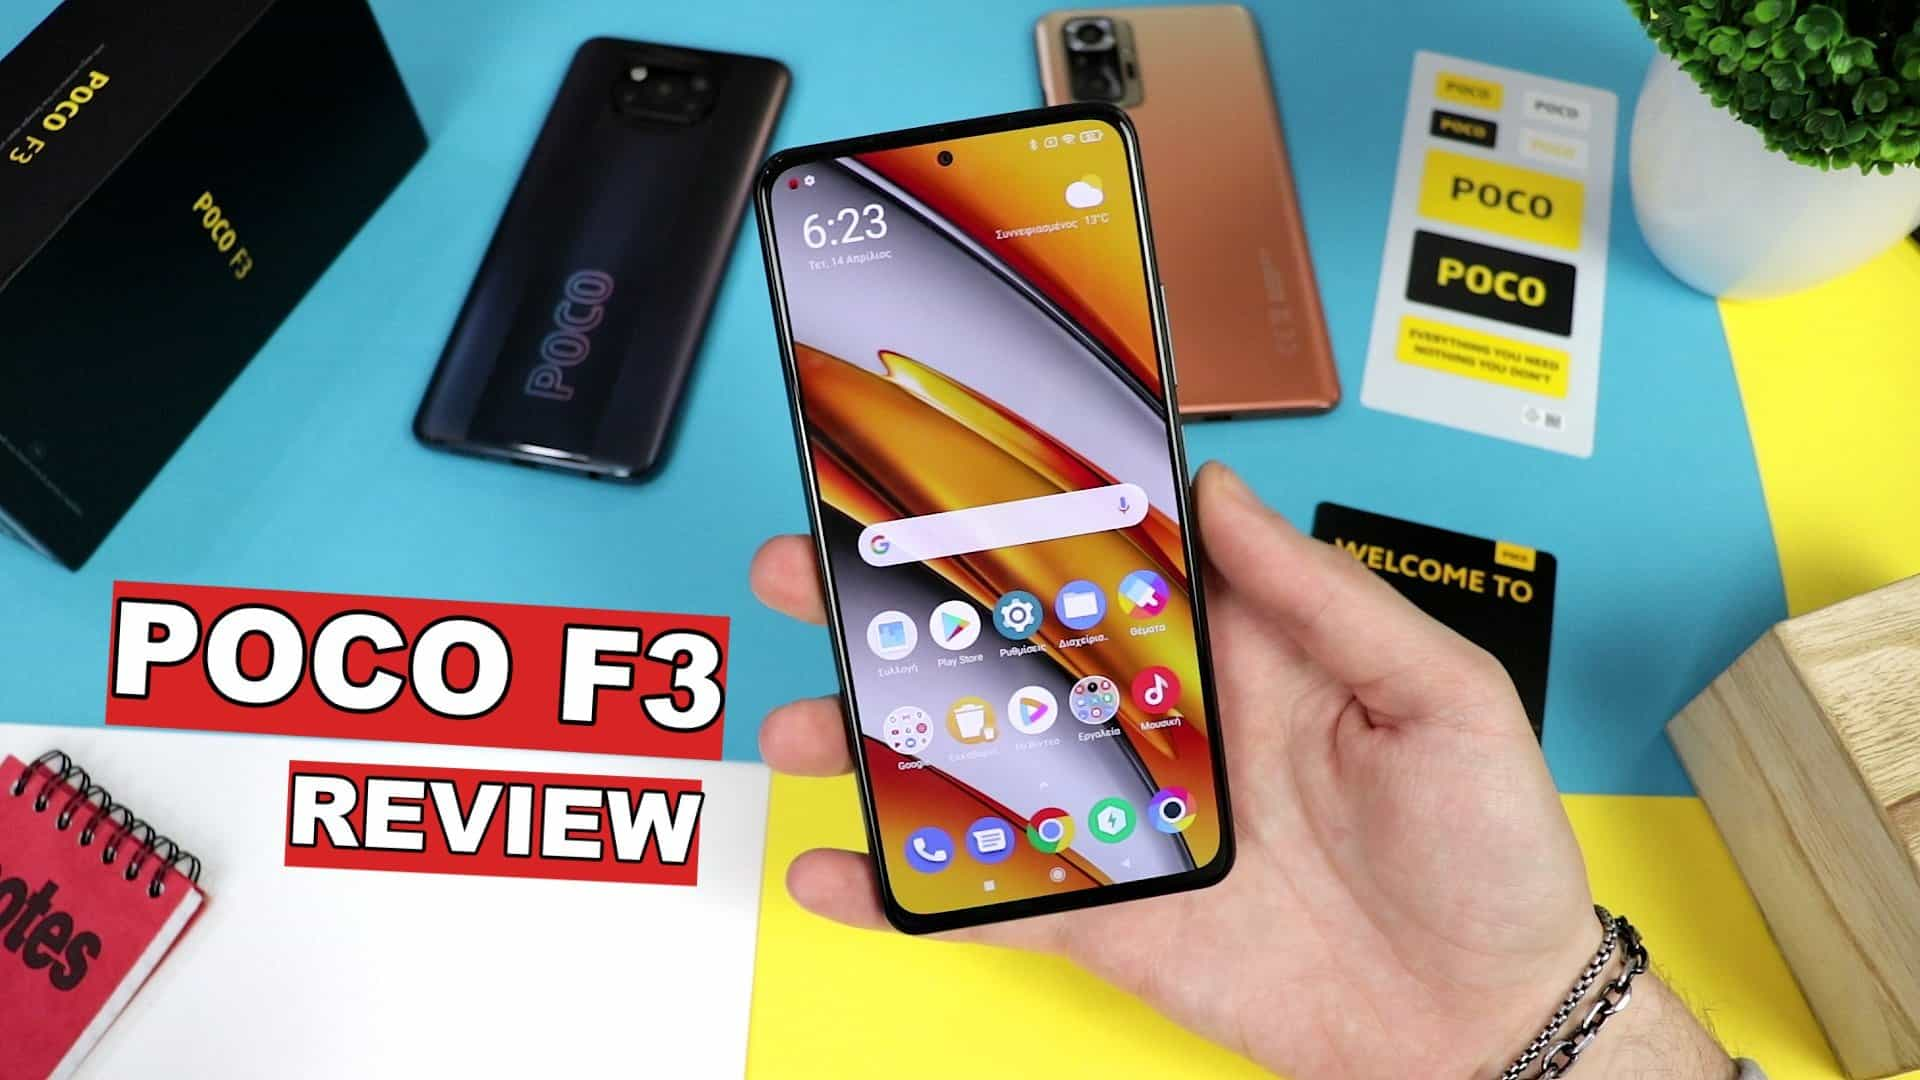 Poco F3 greek review by Unboxing Lab